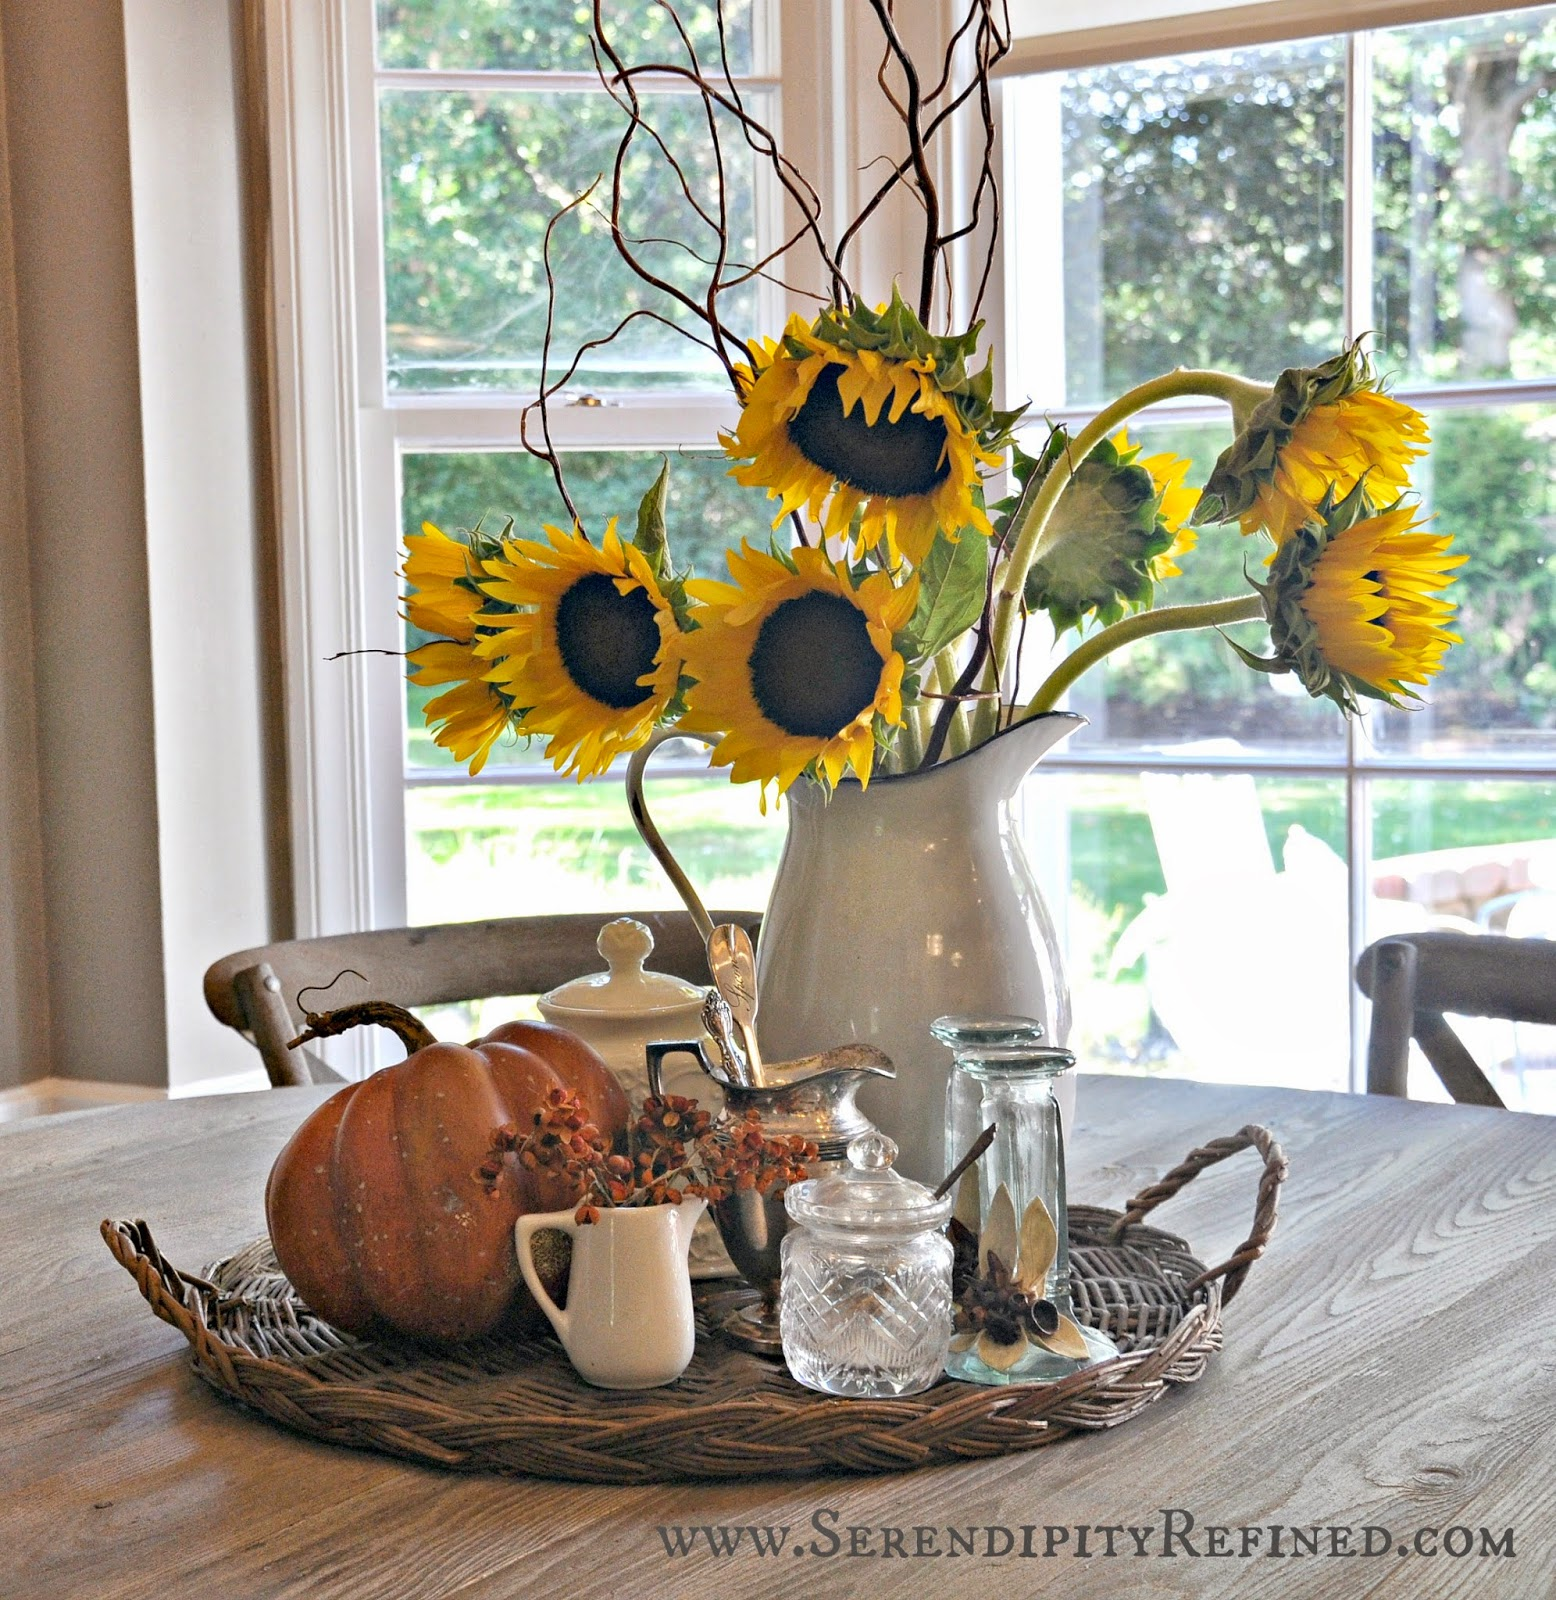 Decorating Top Of Cabinets With Sunflowers House Furniture